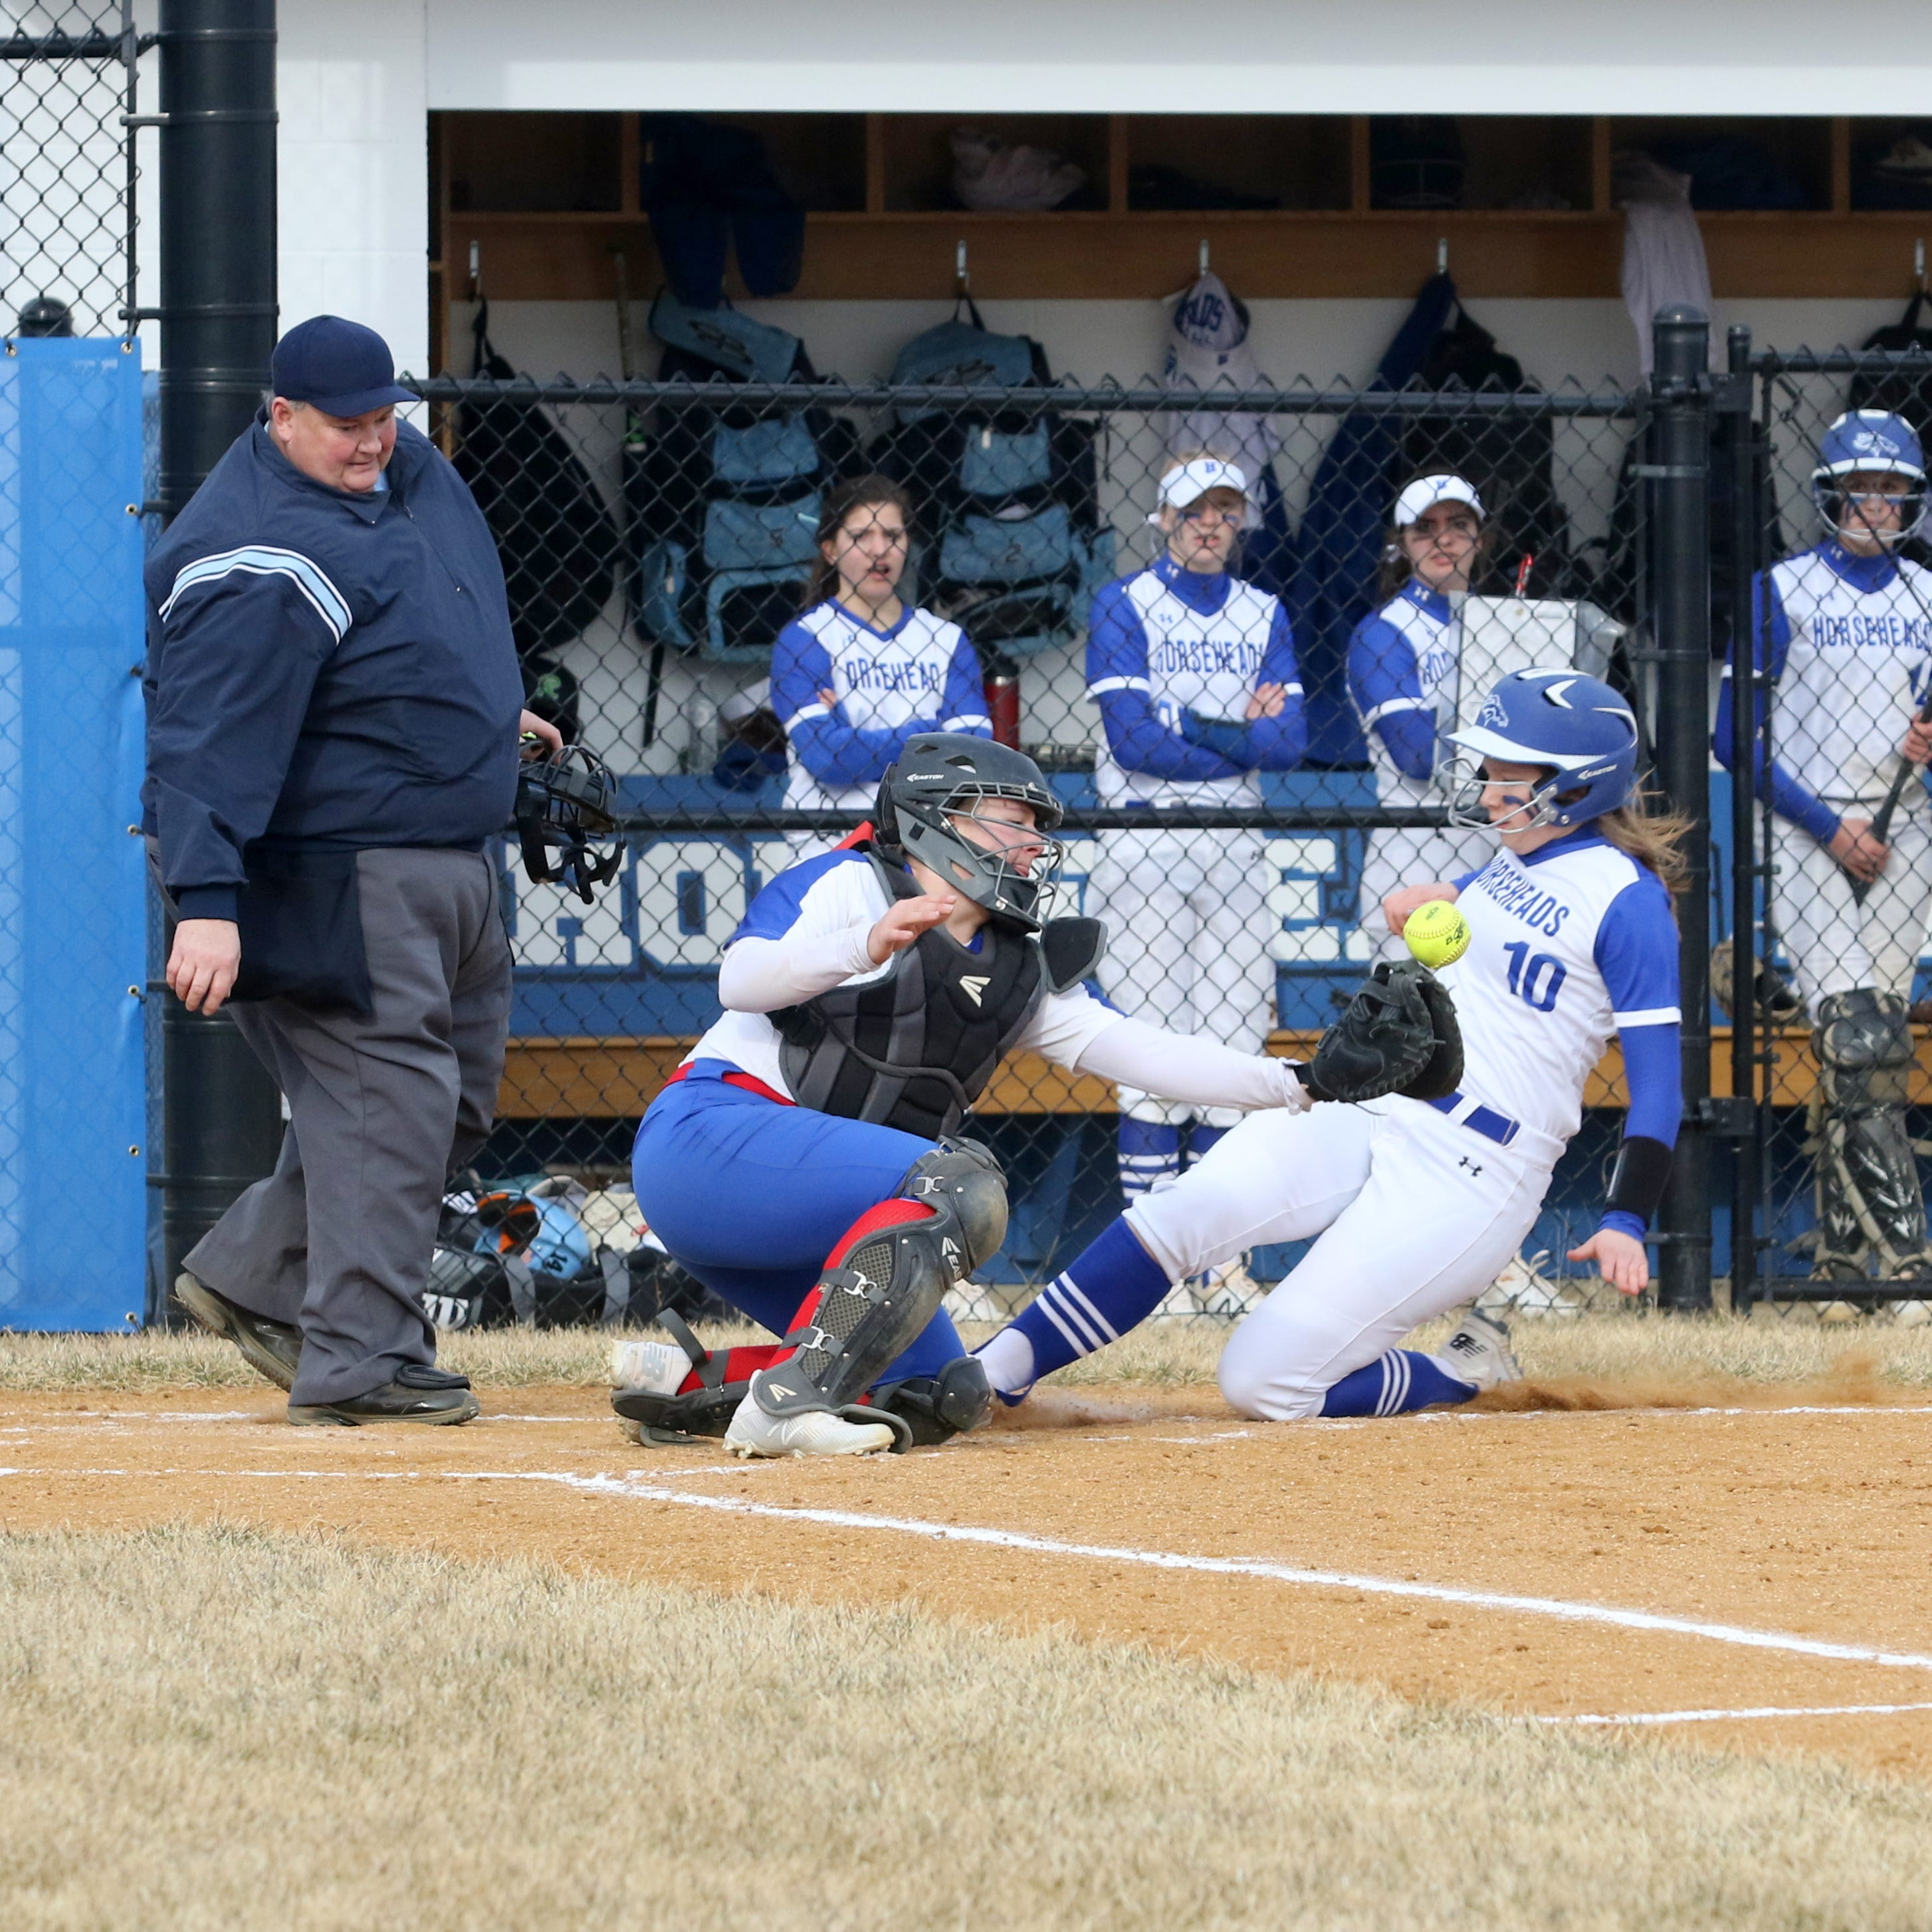 Horseheads rolls in first game as softball stadium officially opens